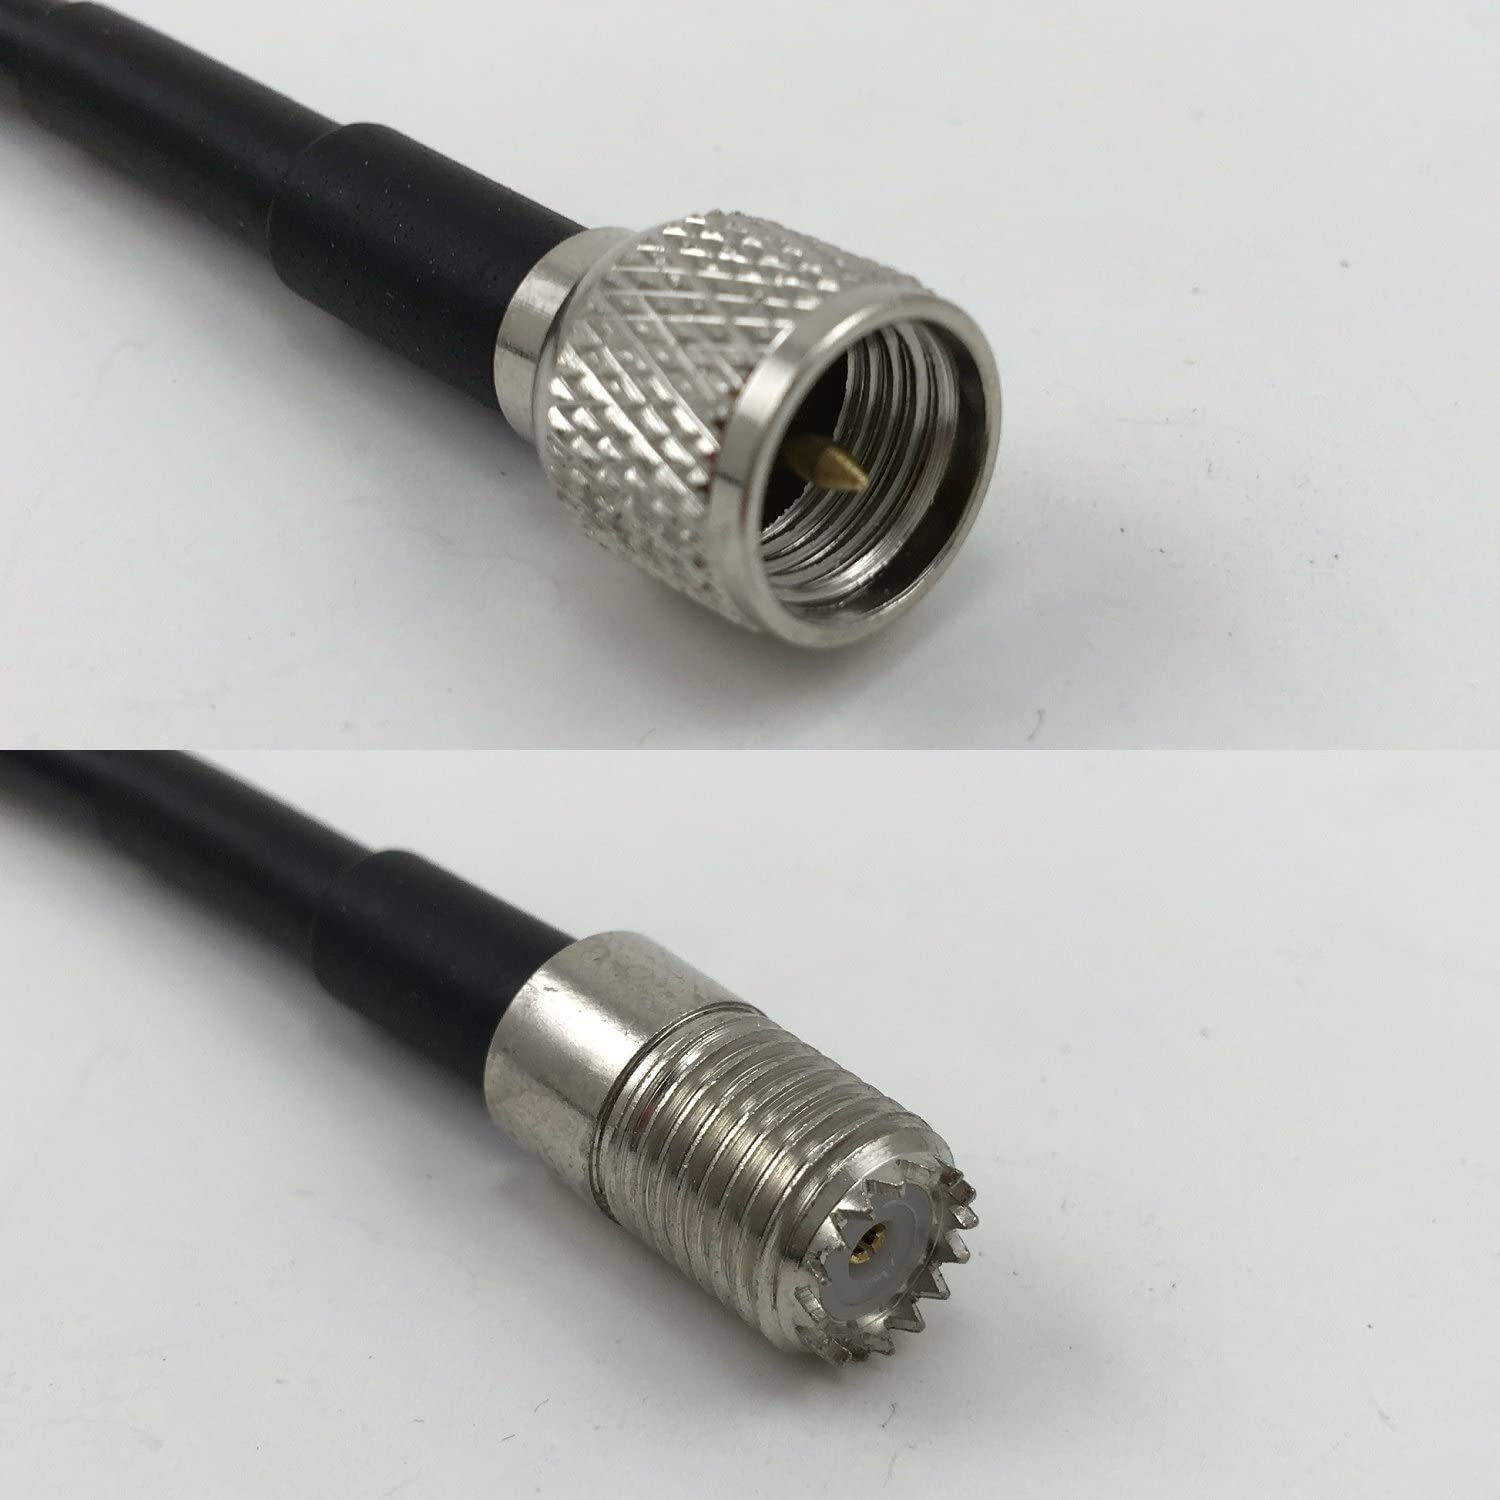 15 feet RFC195 KSR195 PL259 UHF Male to MINI UHF FEMALE Pigtail Jumper RF coaxial cable 50ohm Quick USA Shipping